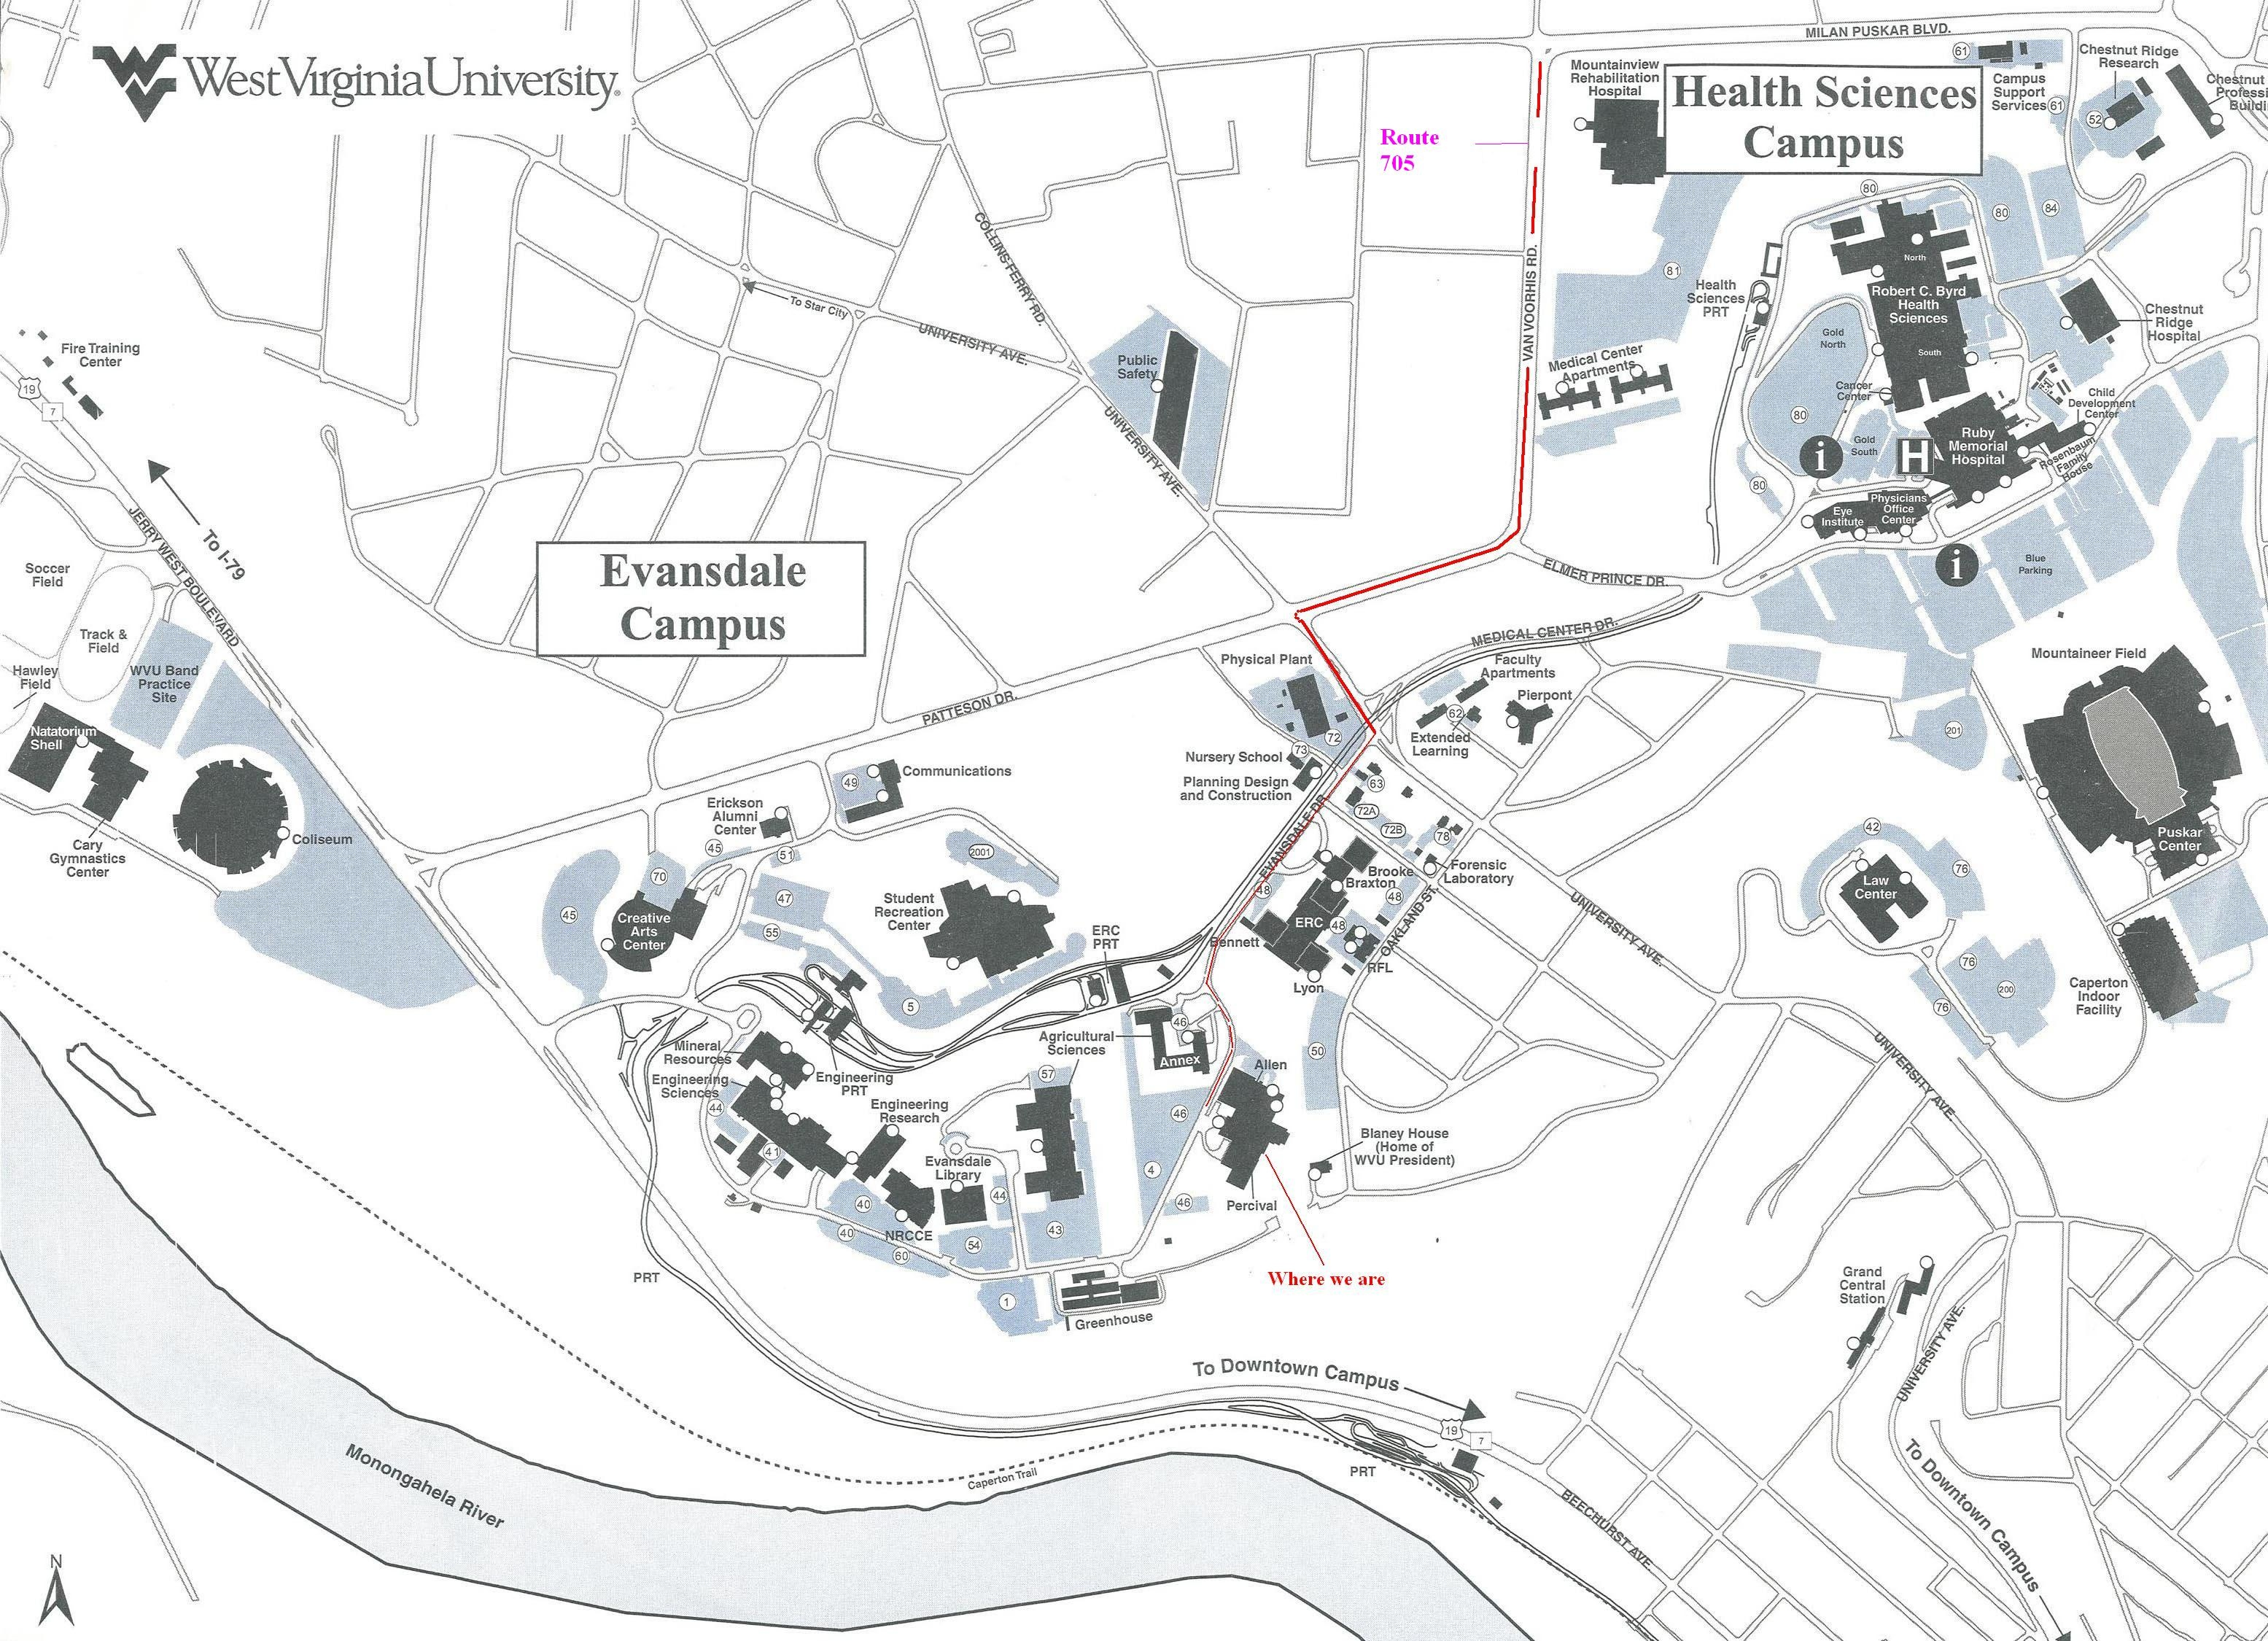 Wvu Downtown Campus Map Precious Metals World Of Ruin Map